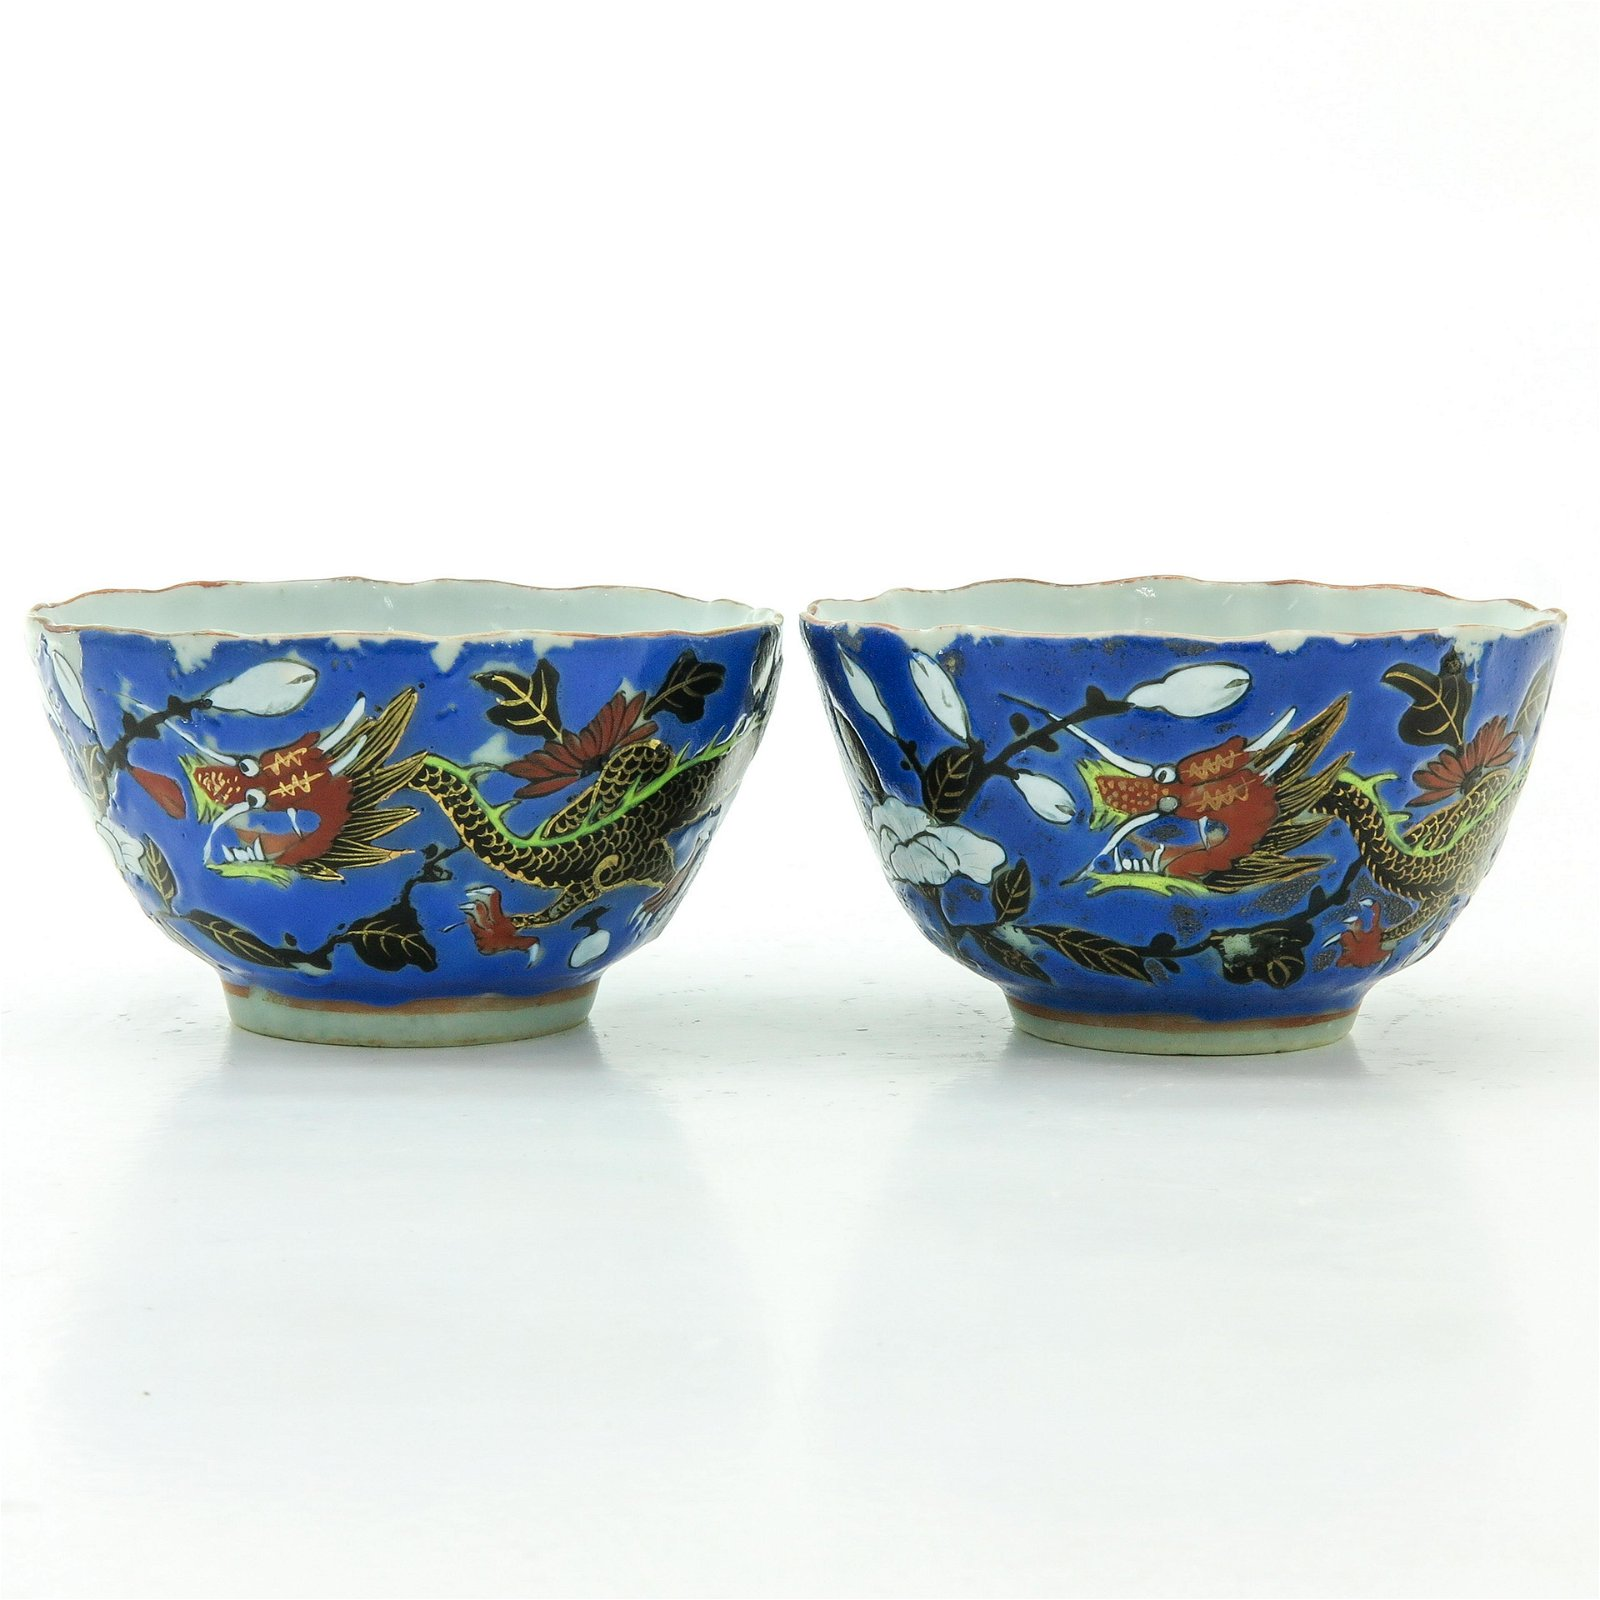 A Pair of Polychrome Decor Cups